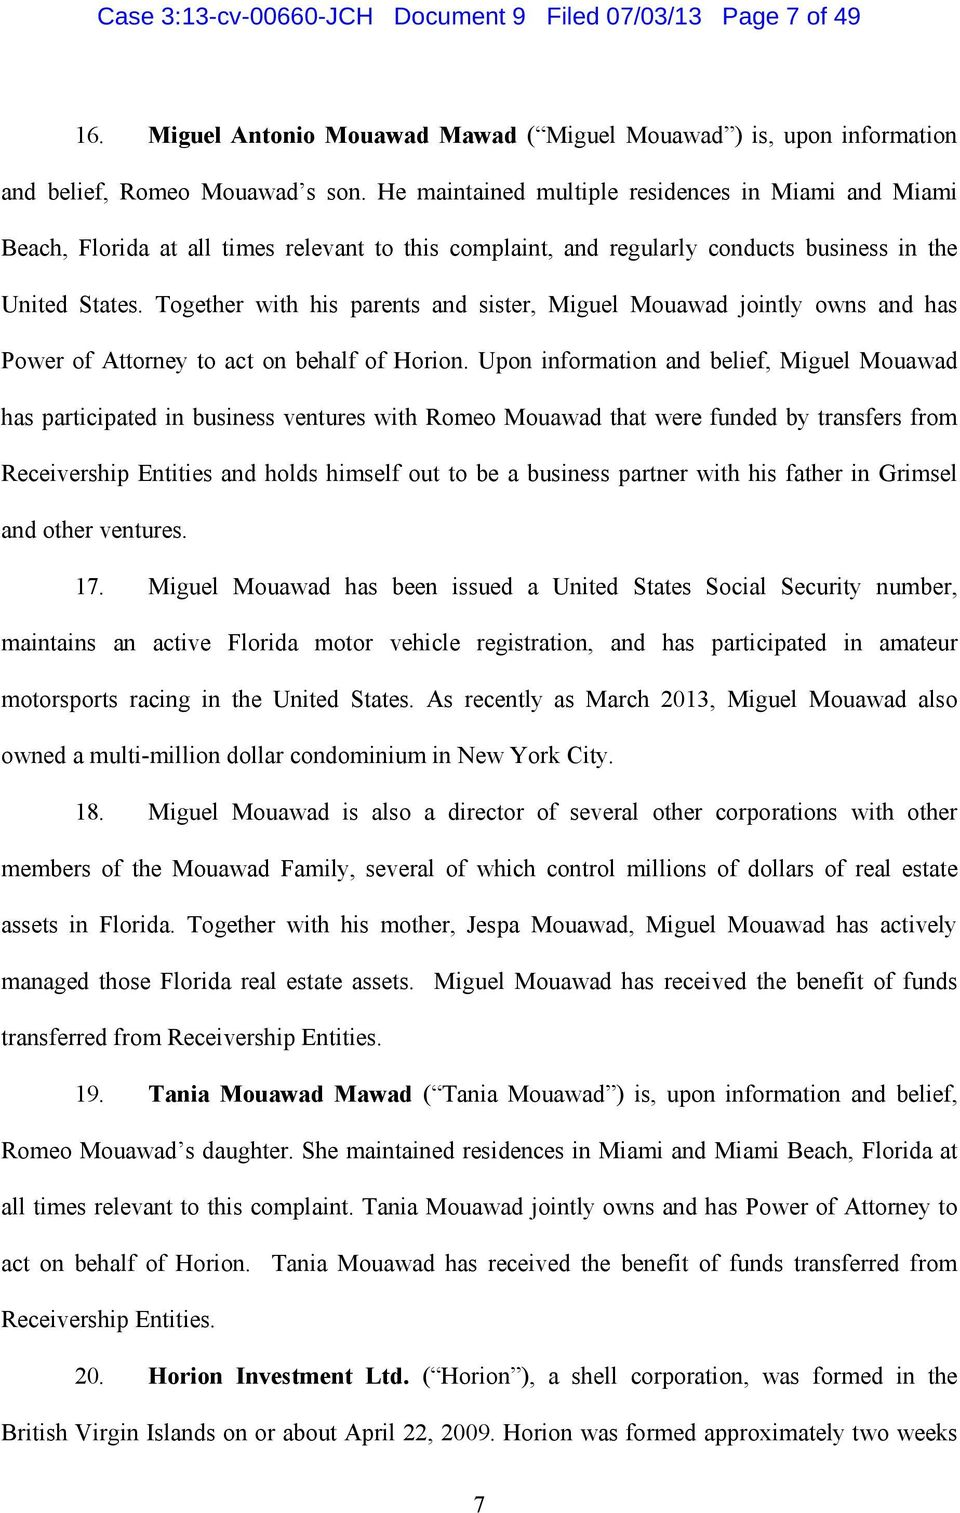 Together with his parents and sister, Miguel Mouawad jointly owns and has Power of Attorney to act on behalf of Horion.